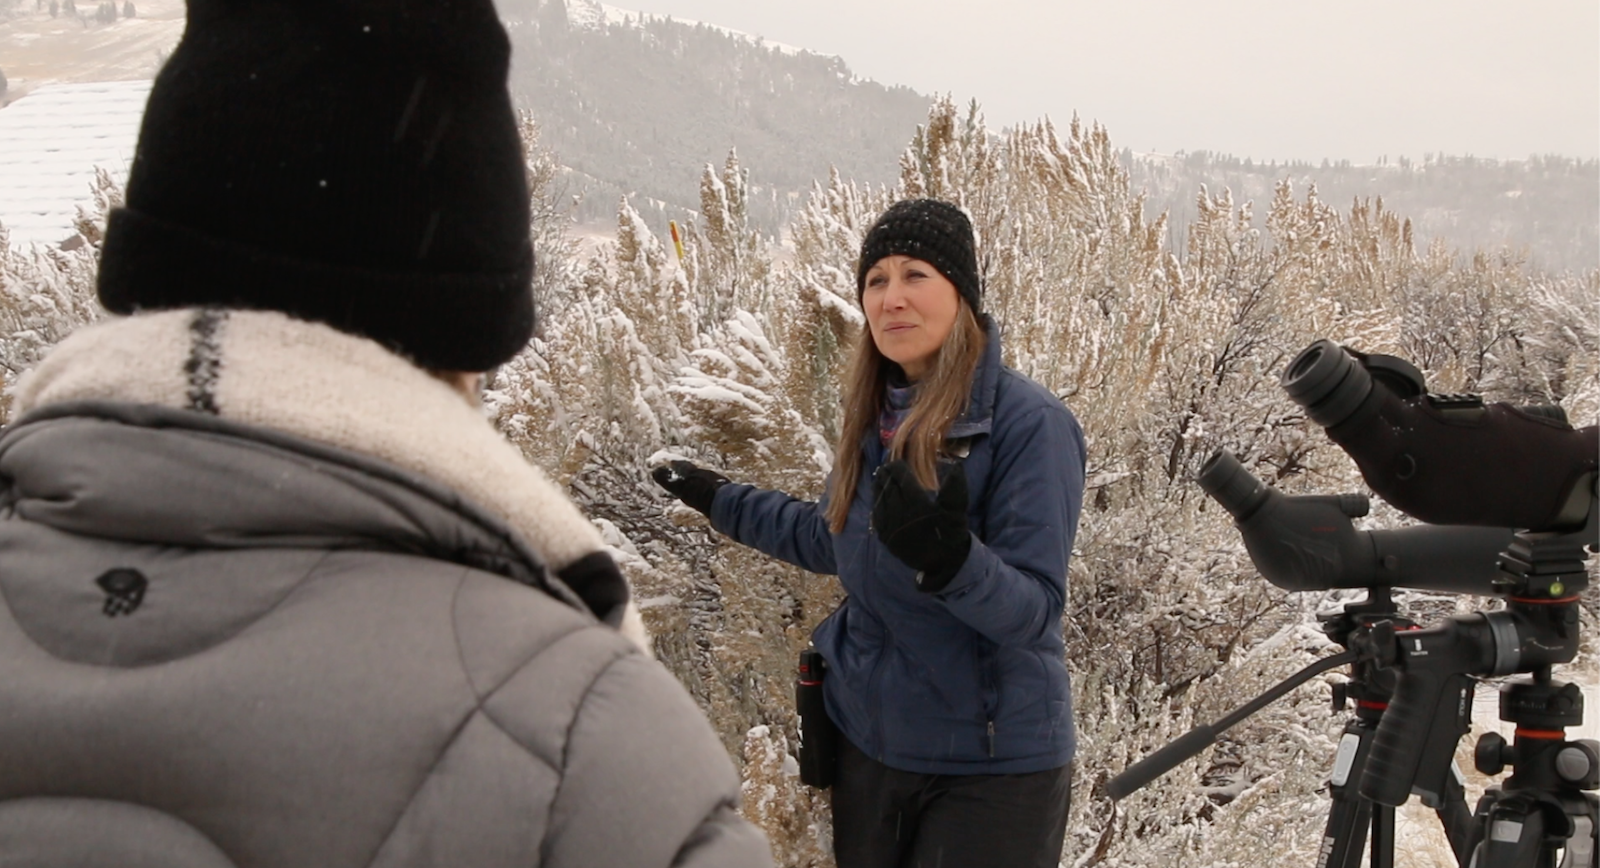 Guide Audra speaking during a Yellowstone wildlife tour in the winter